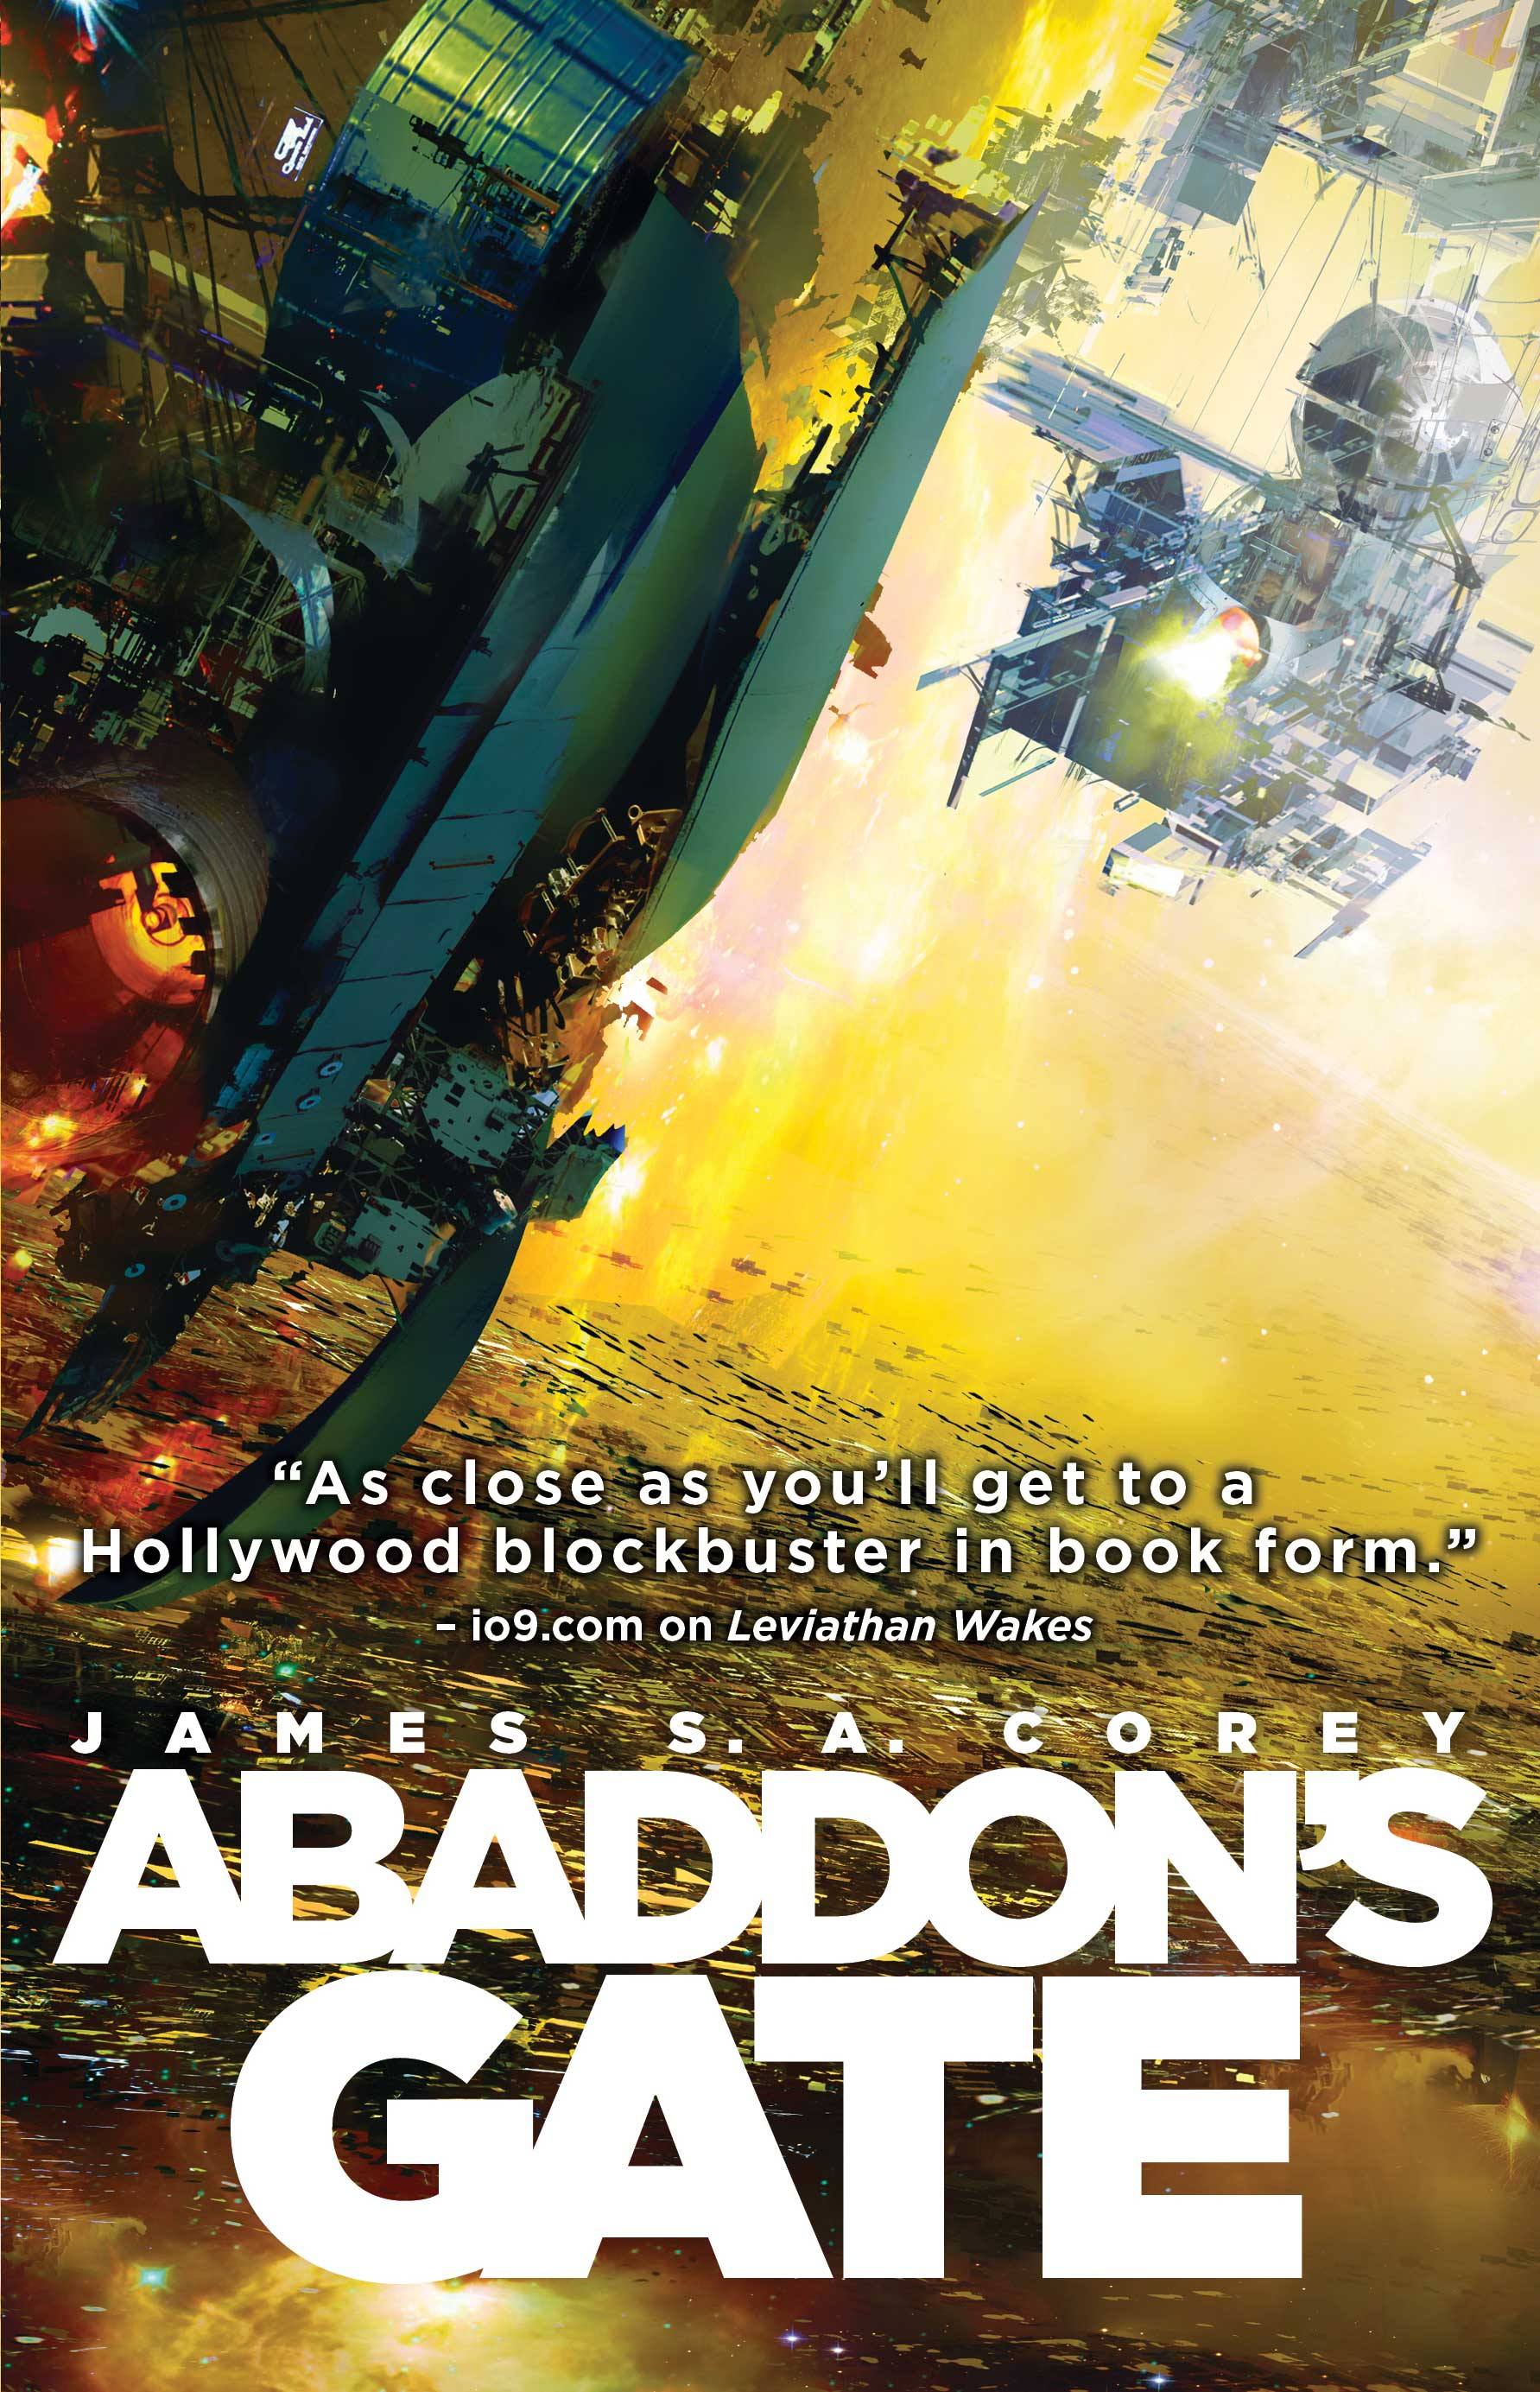 Abaddon's Gate | The Expanse Wiki | FANDOM powered by Wikia